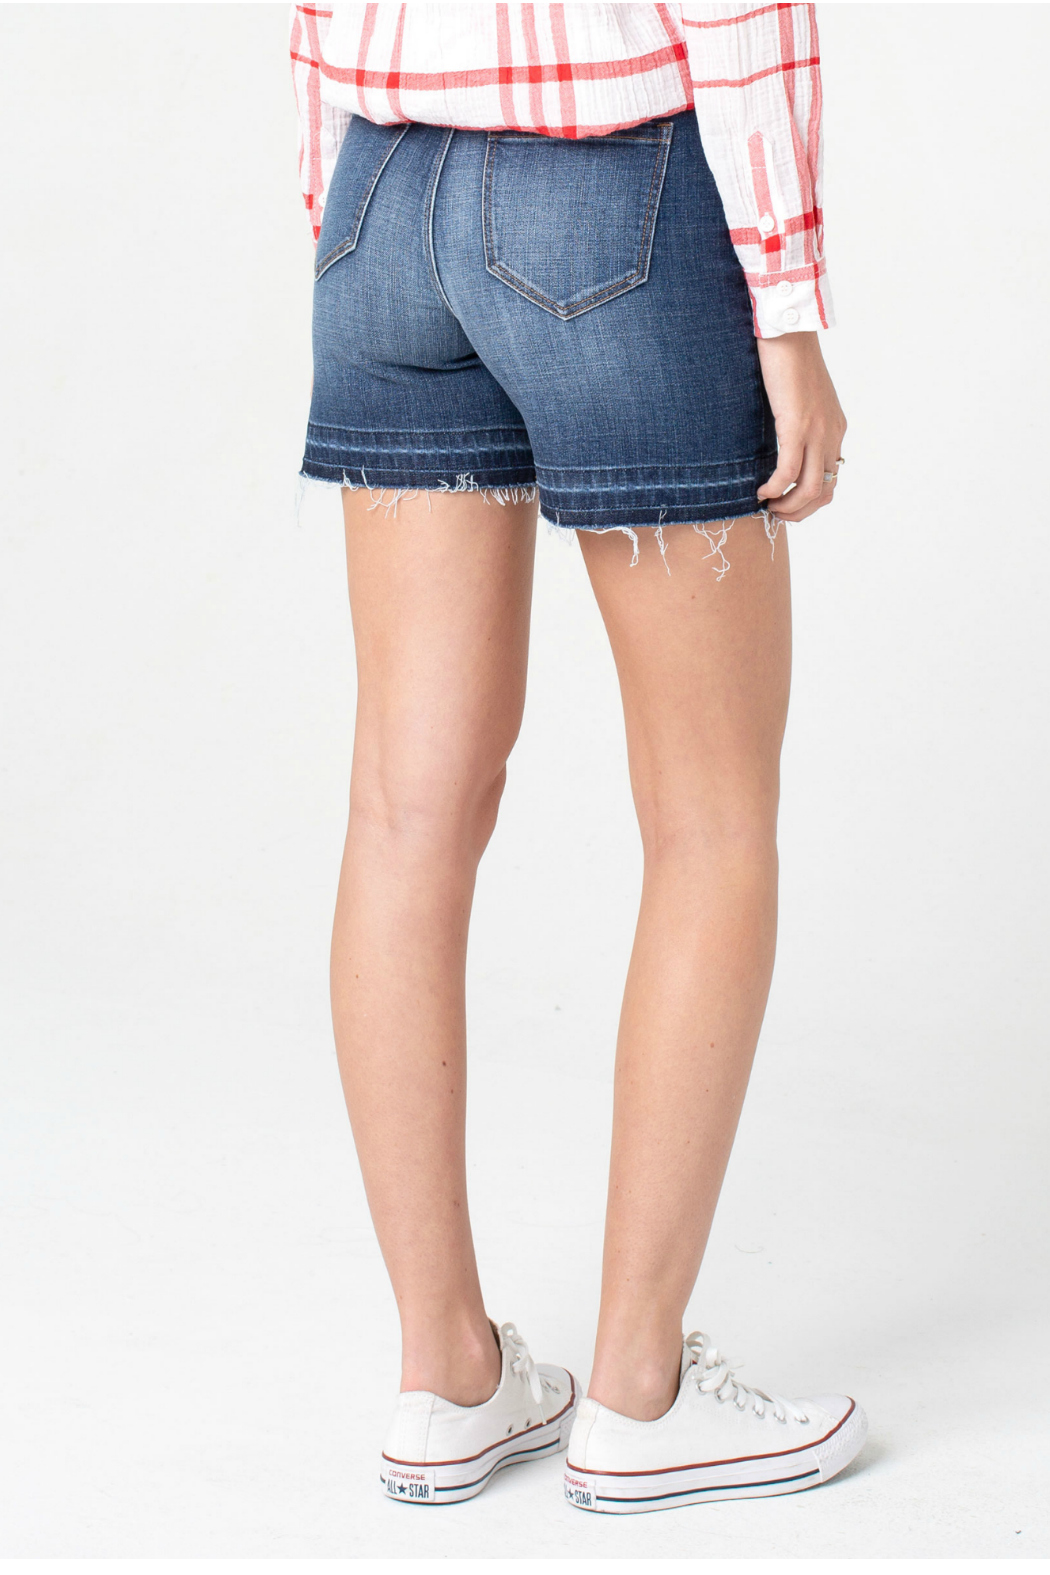 Liverpool Vickie High rise short - Front Full Image